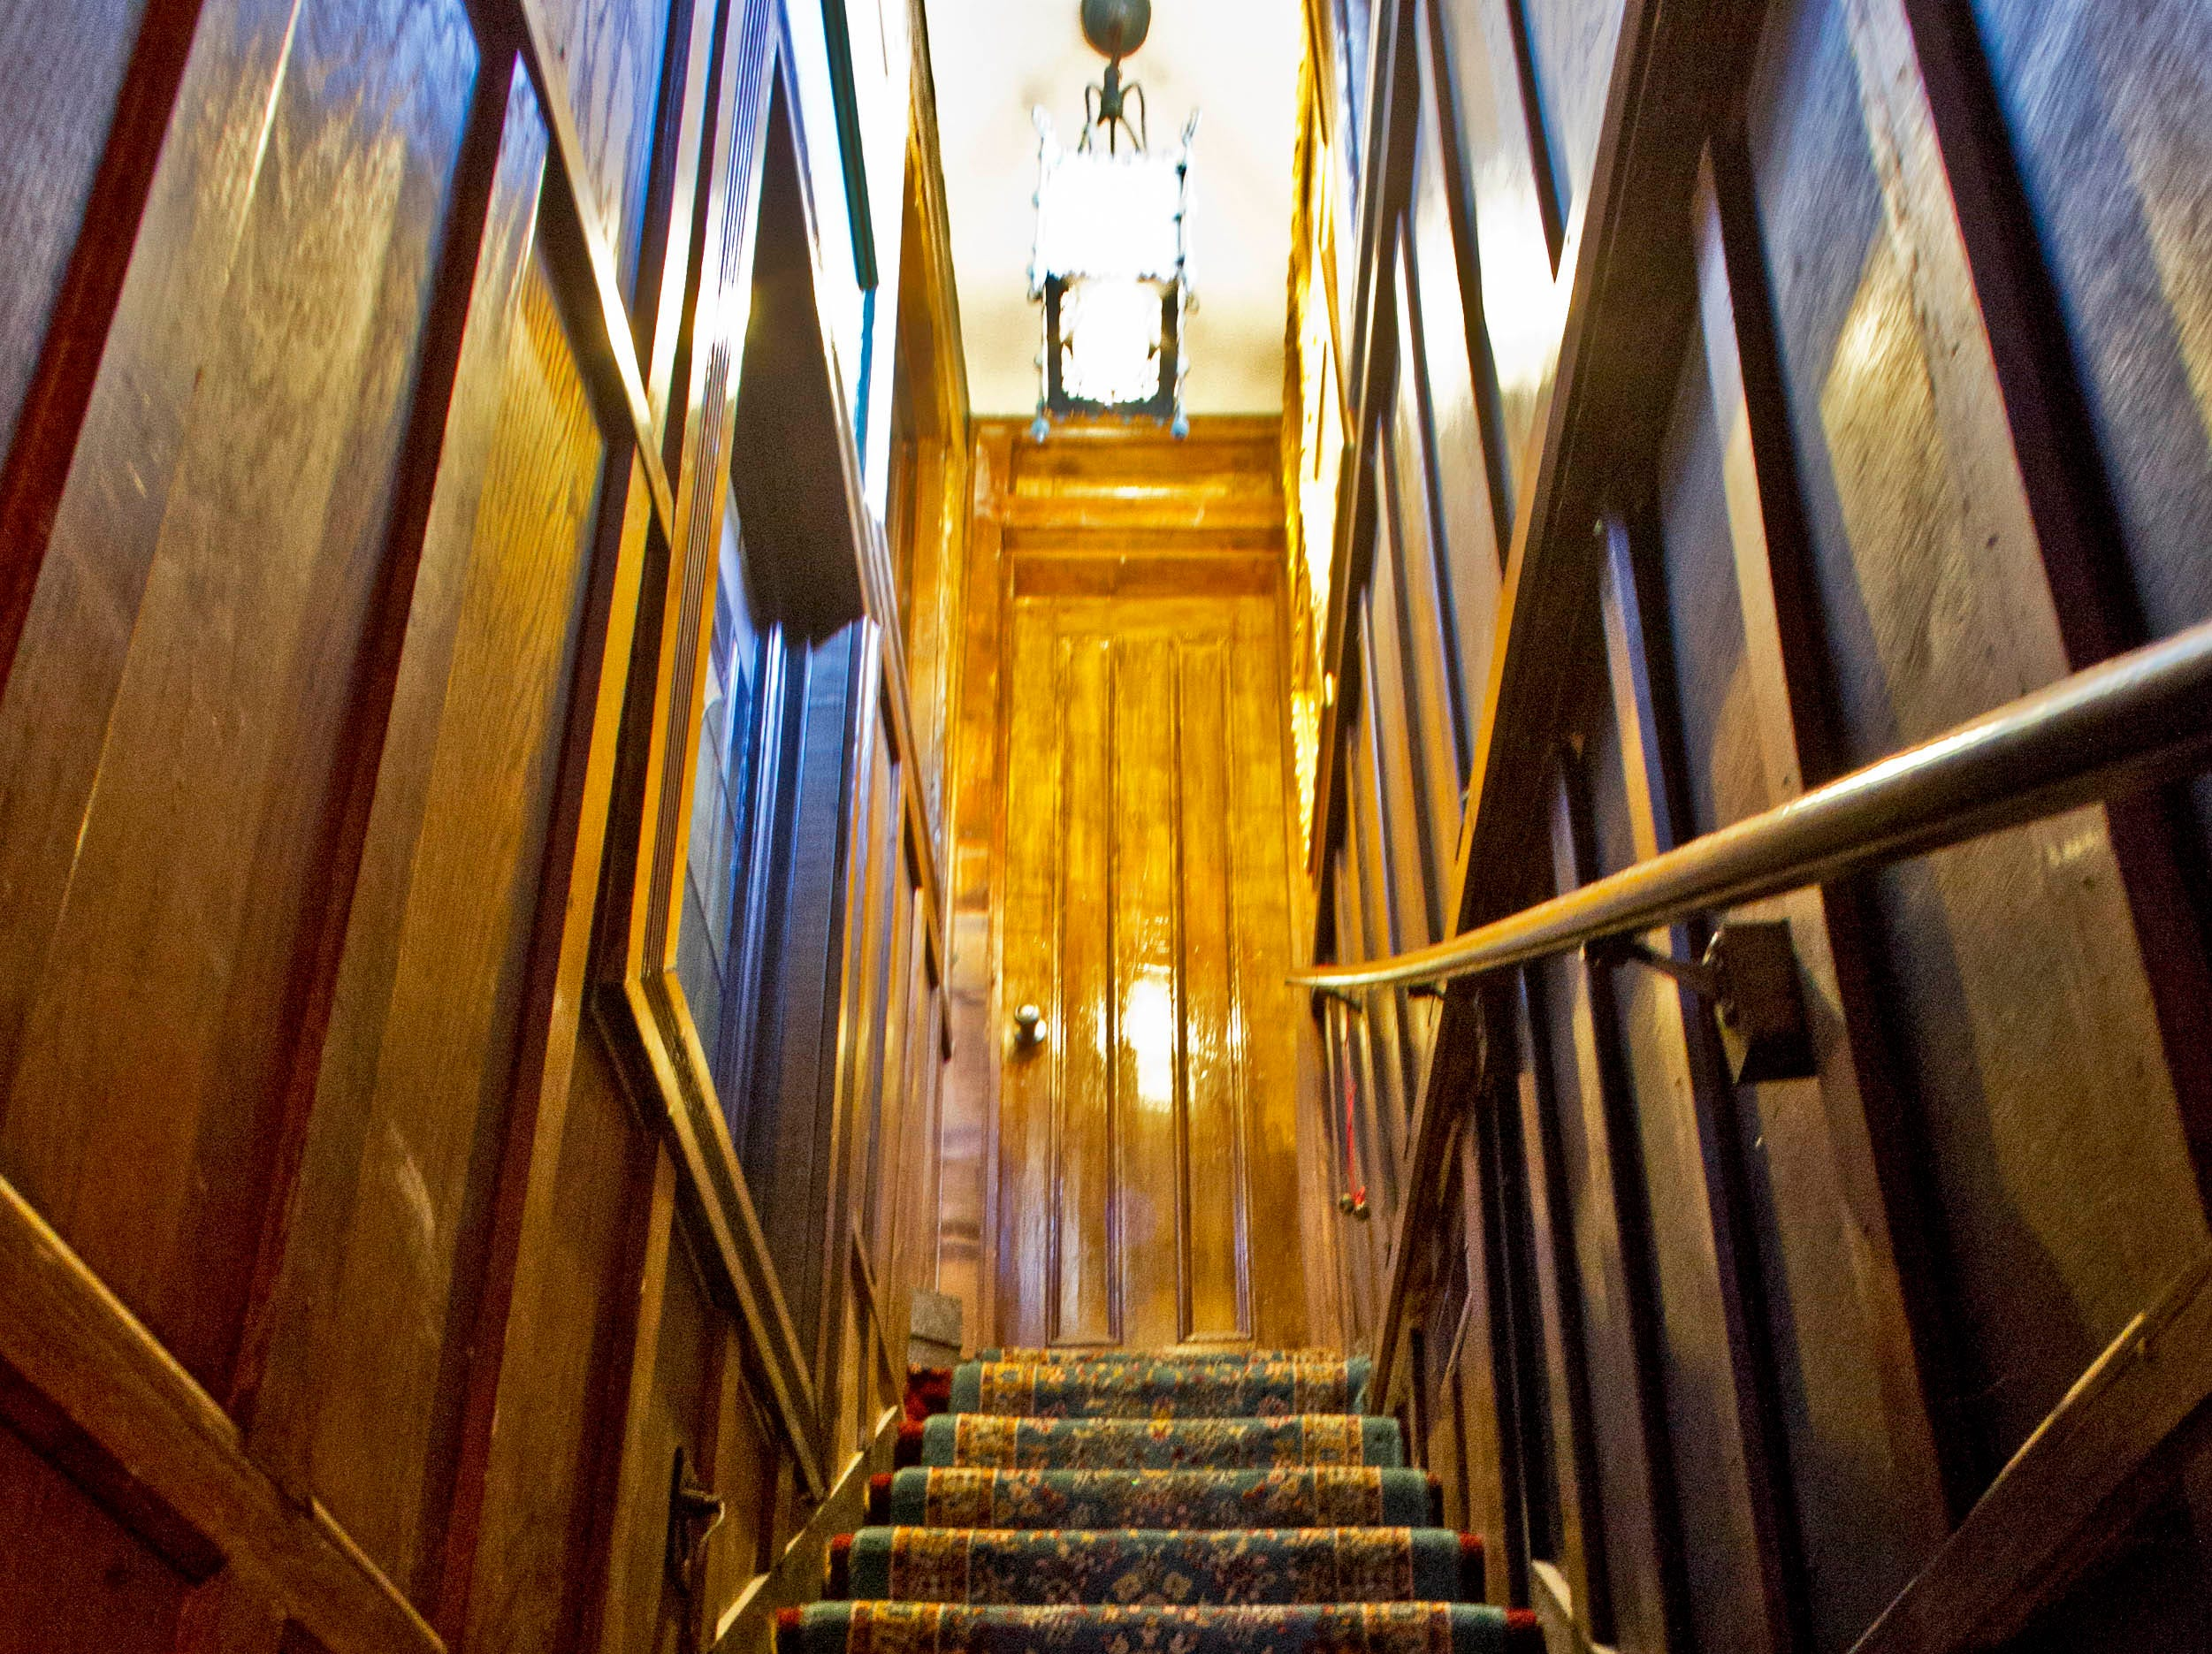 A narrow stairway leads to a bedroom at Williamswood Castle Sunday, March 15, 2015, in Knoxville, Tenn.